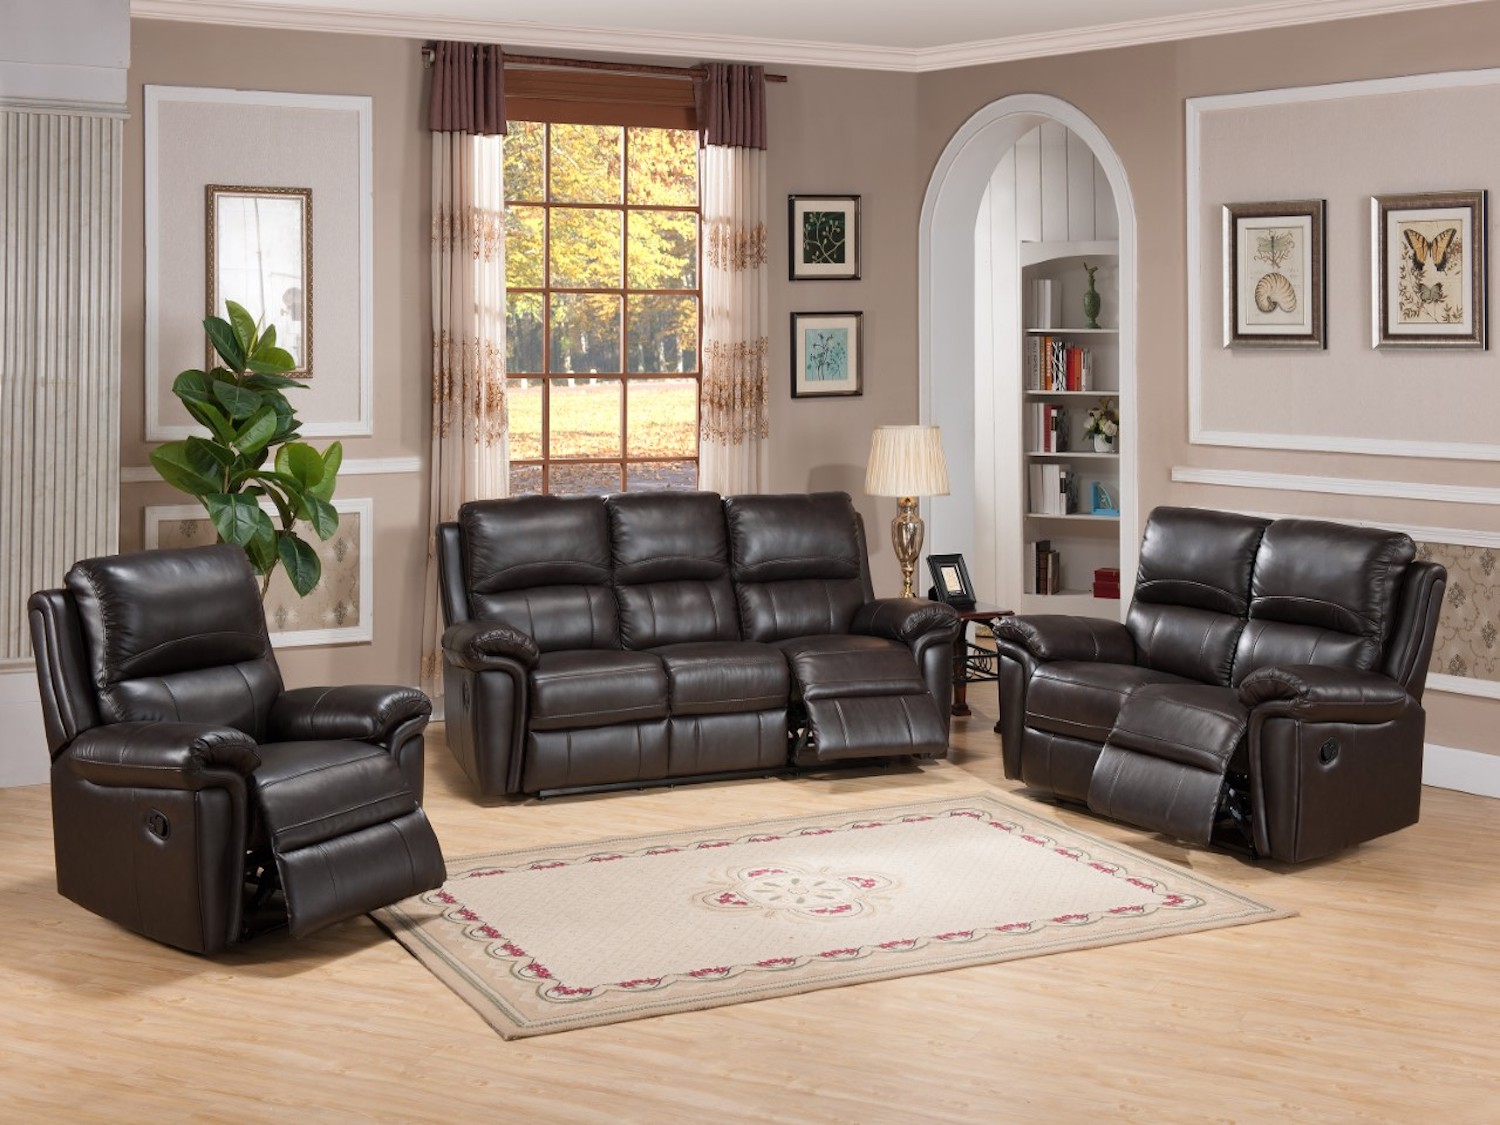 Monica Sofa + Love Seat, Monica, Premium Living Room Collection, Monica Sofa + Love Seat from Amax Leather by Midha Furniture serving Brampton, Mississauga, Etobicoke, Toronto, Scraborough, Caledon, Cambridge, Oakville, Markham, Ajax, Pickering, Oshawa, Richmondhill, Kitchener, Hamilton, Cambridge, Waterloo and GTA area